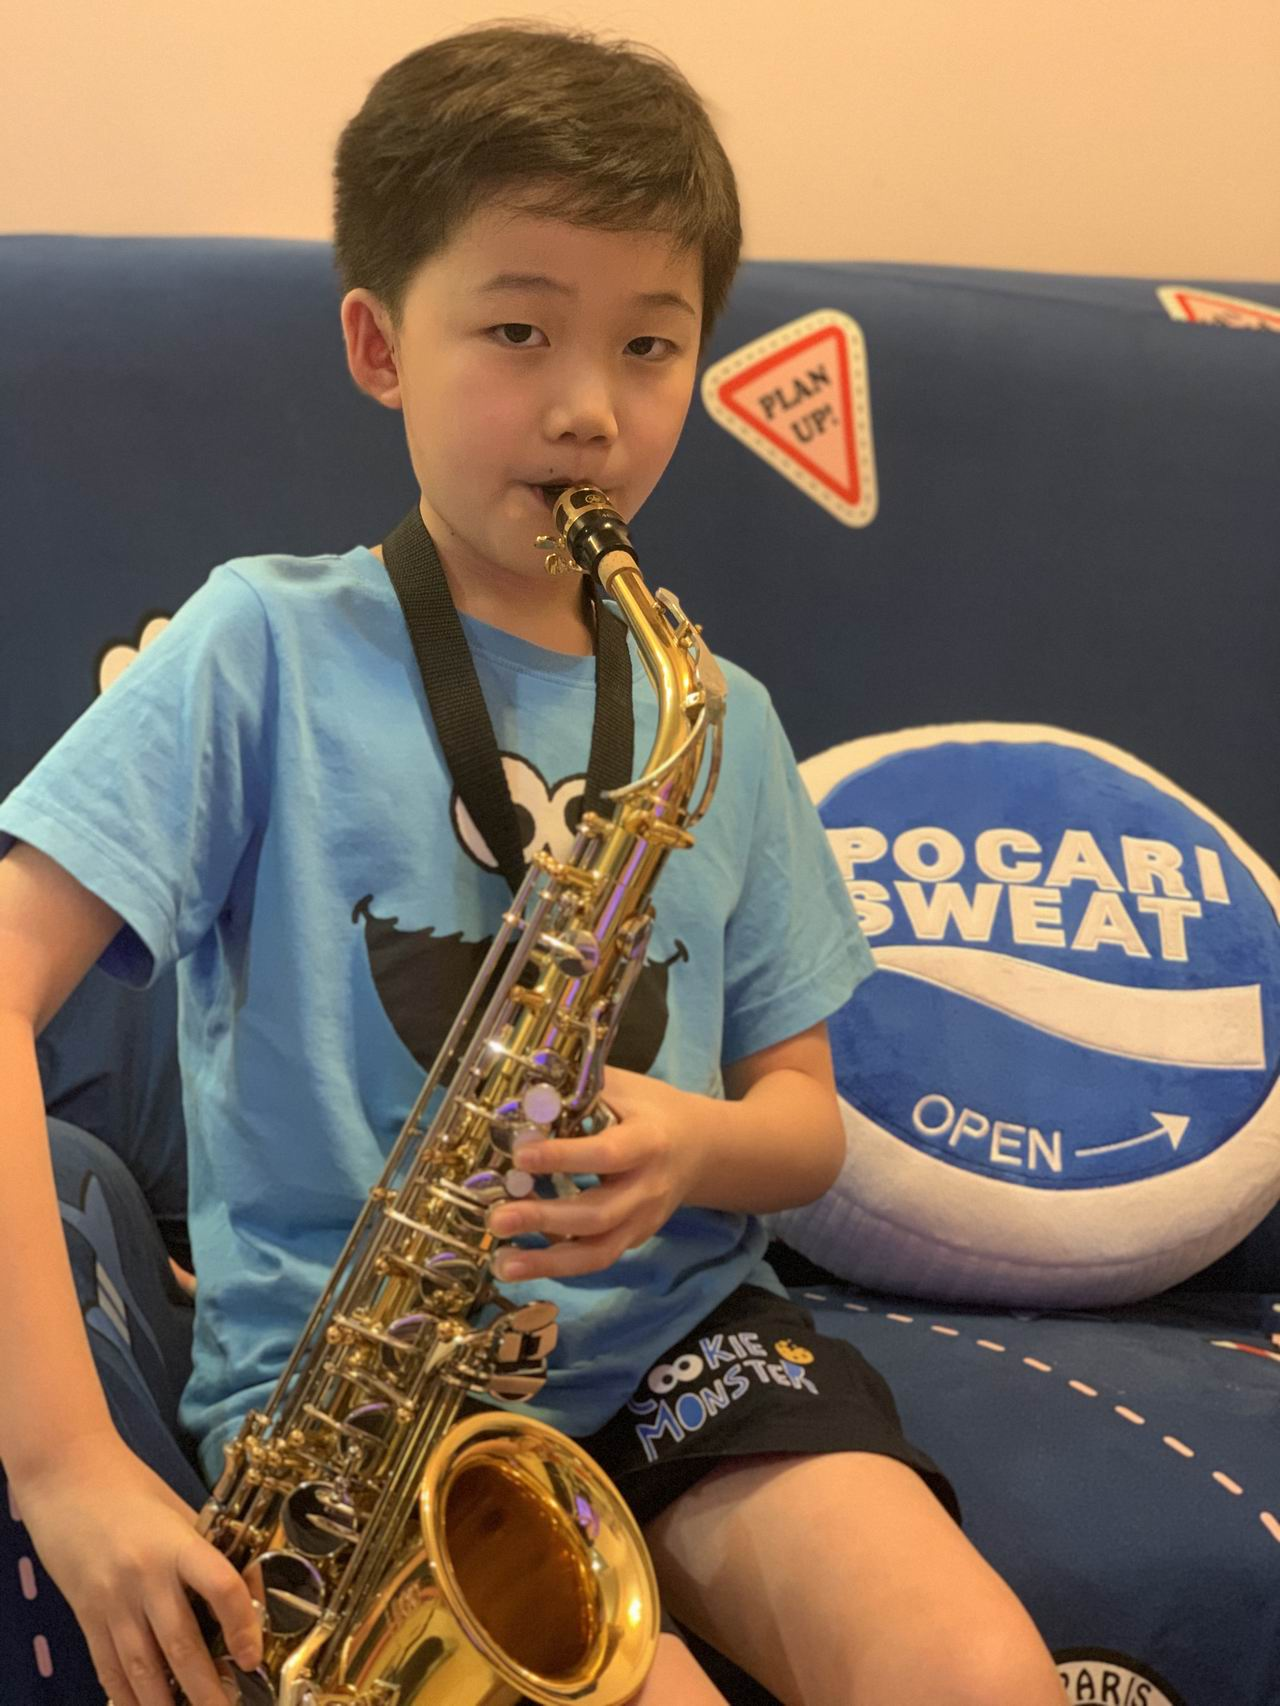 https://plkcjy.edu.hk/sites/default/files/gordon_shing_saxophone_1_-_joe_shing.jpg